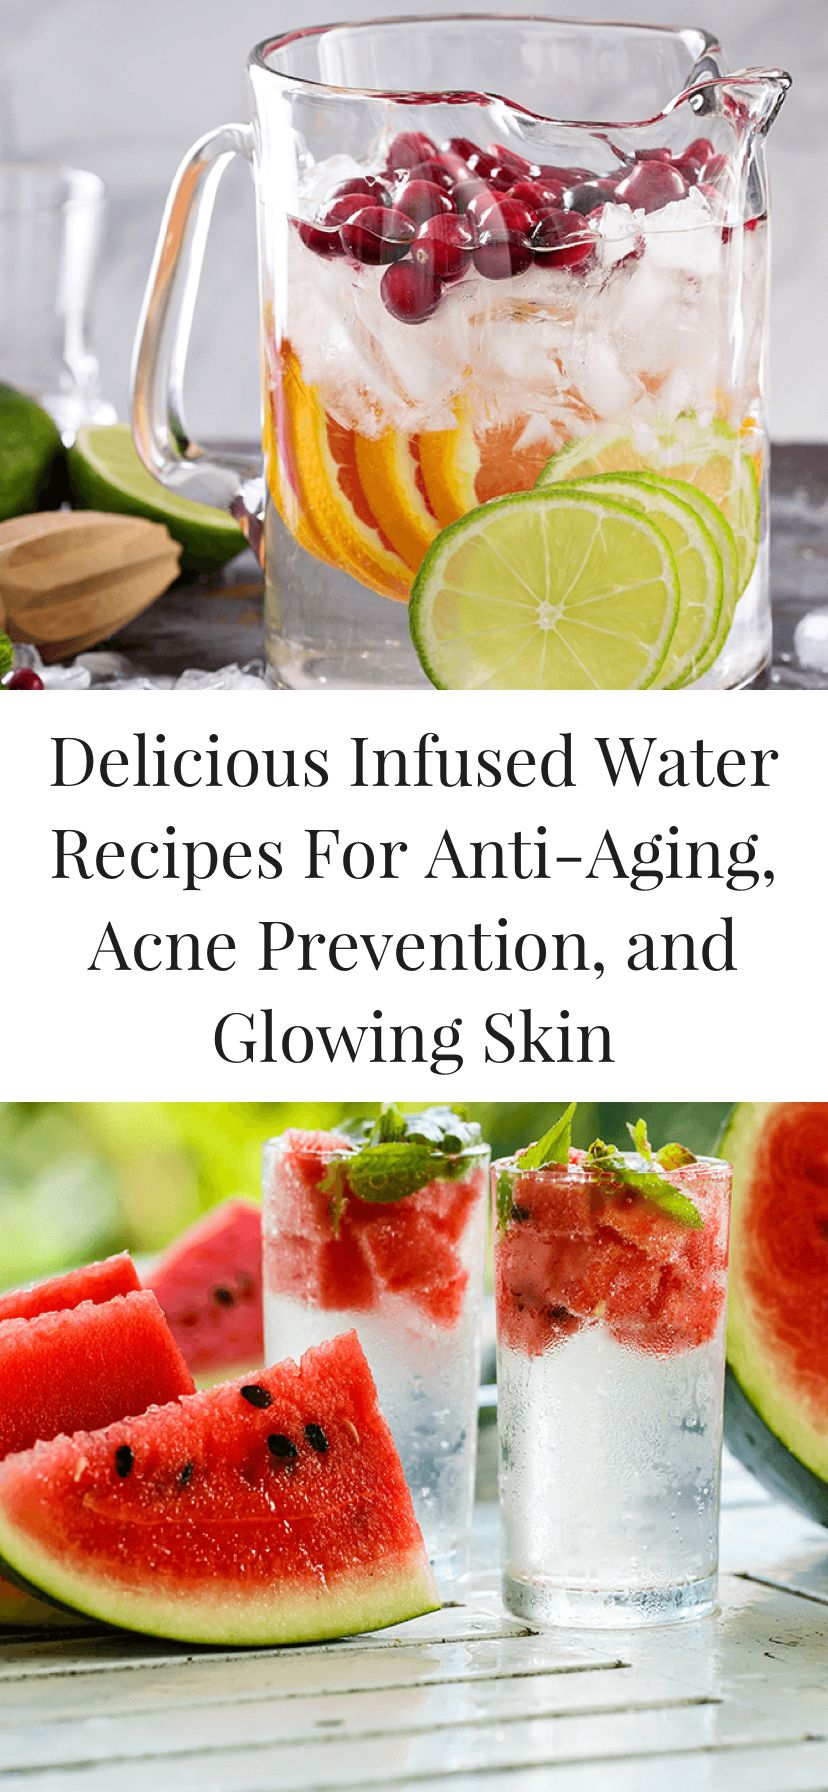 Delicious Infused Water Recipes For AntiAging, Acne